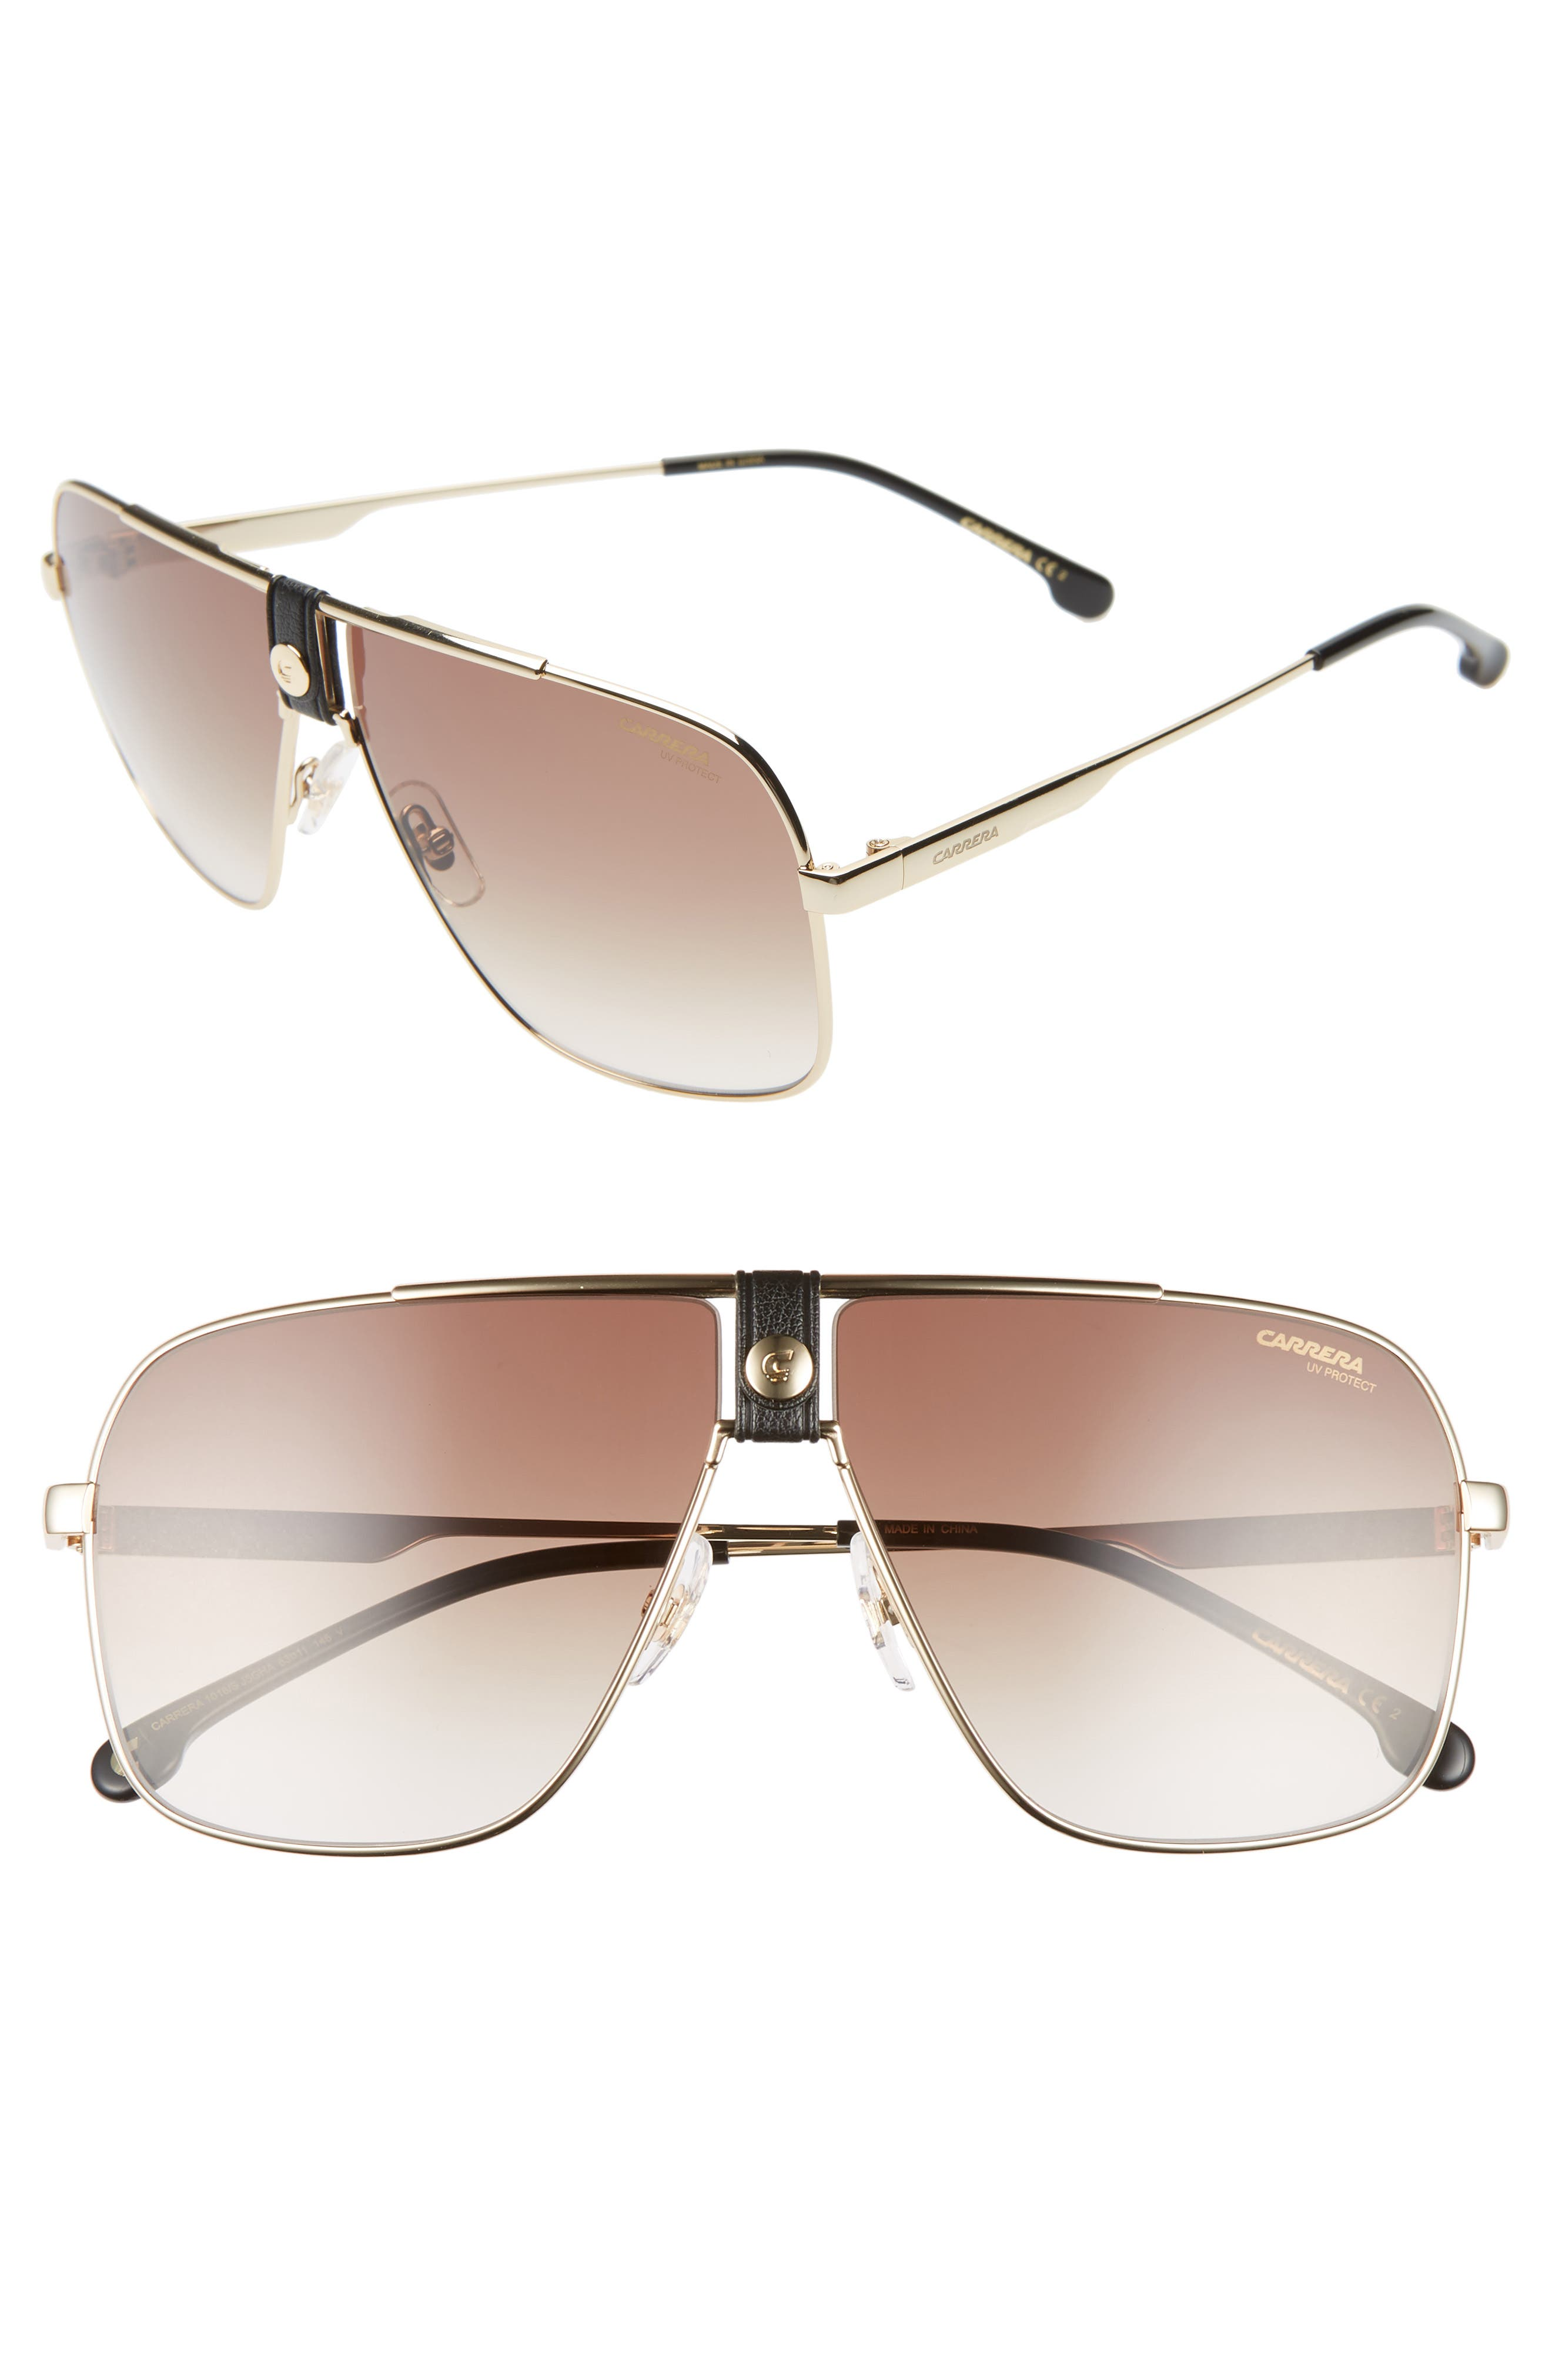 Carrera Eyewear 6m Navigator Sunglasses - Gold